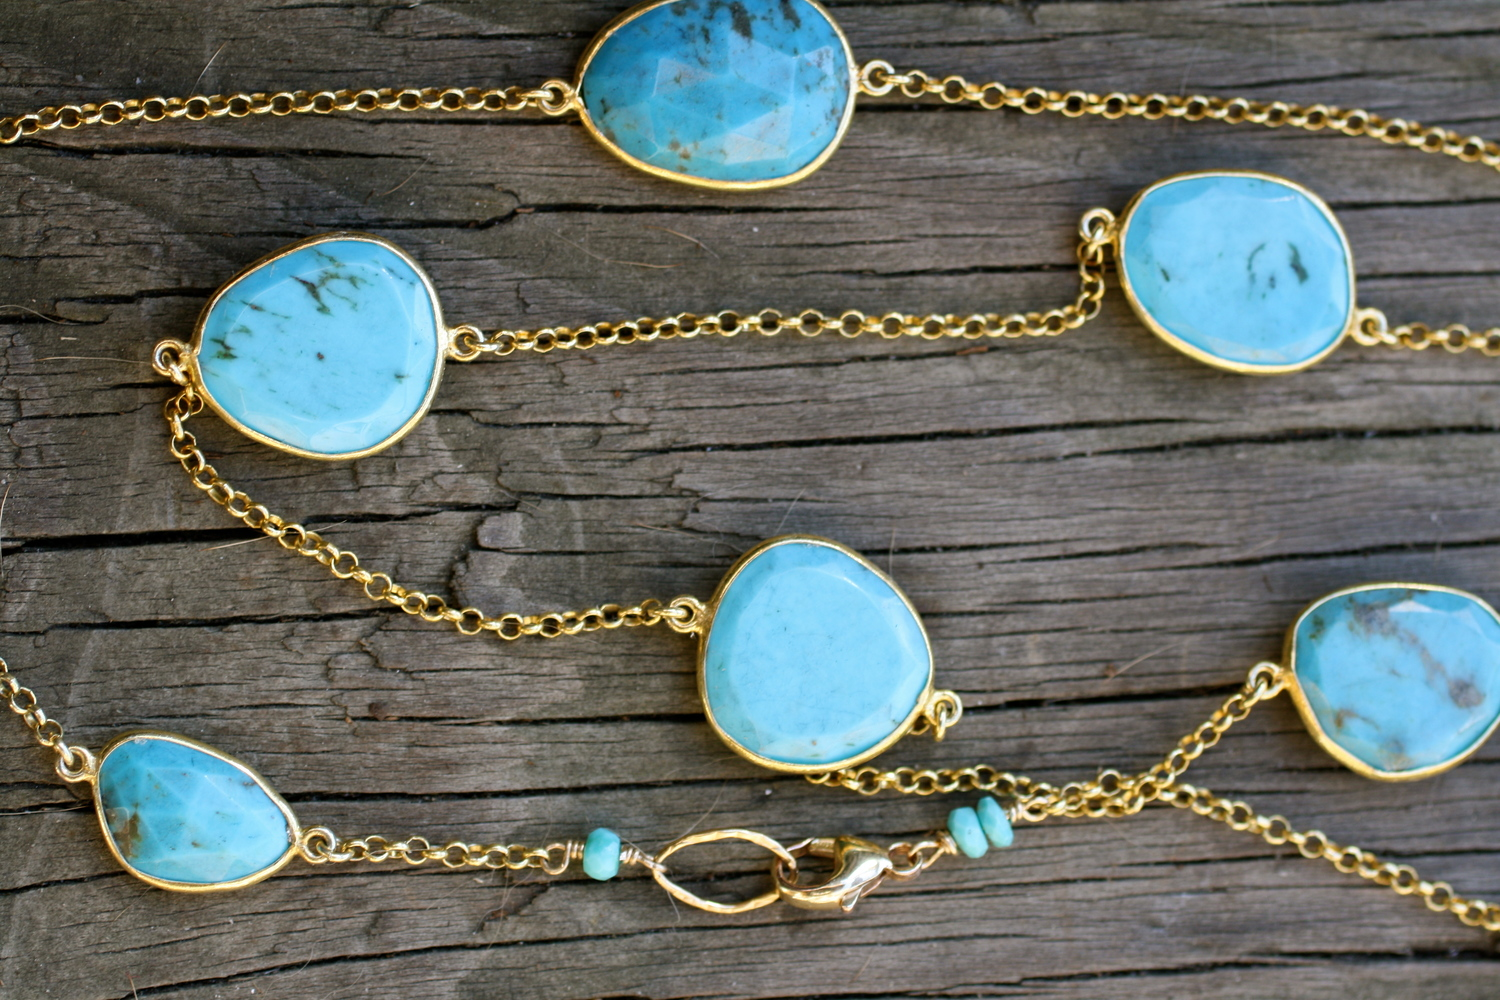 Turquoise+Bezel+GP+SS+Necklace+Prototype+for+Anne+Boatwright_03.jpg